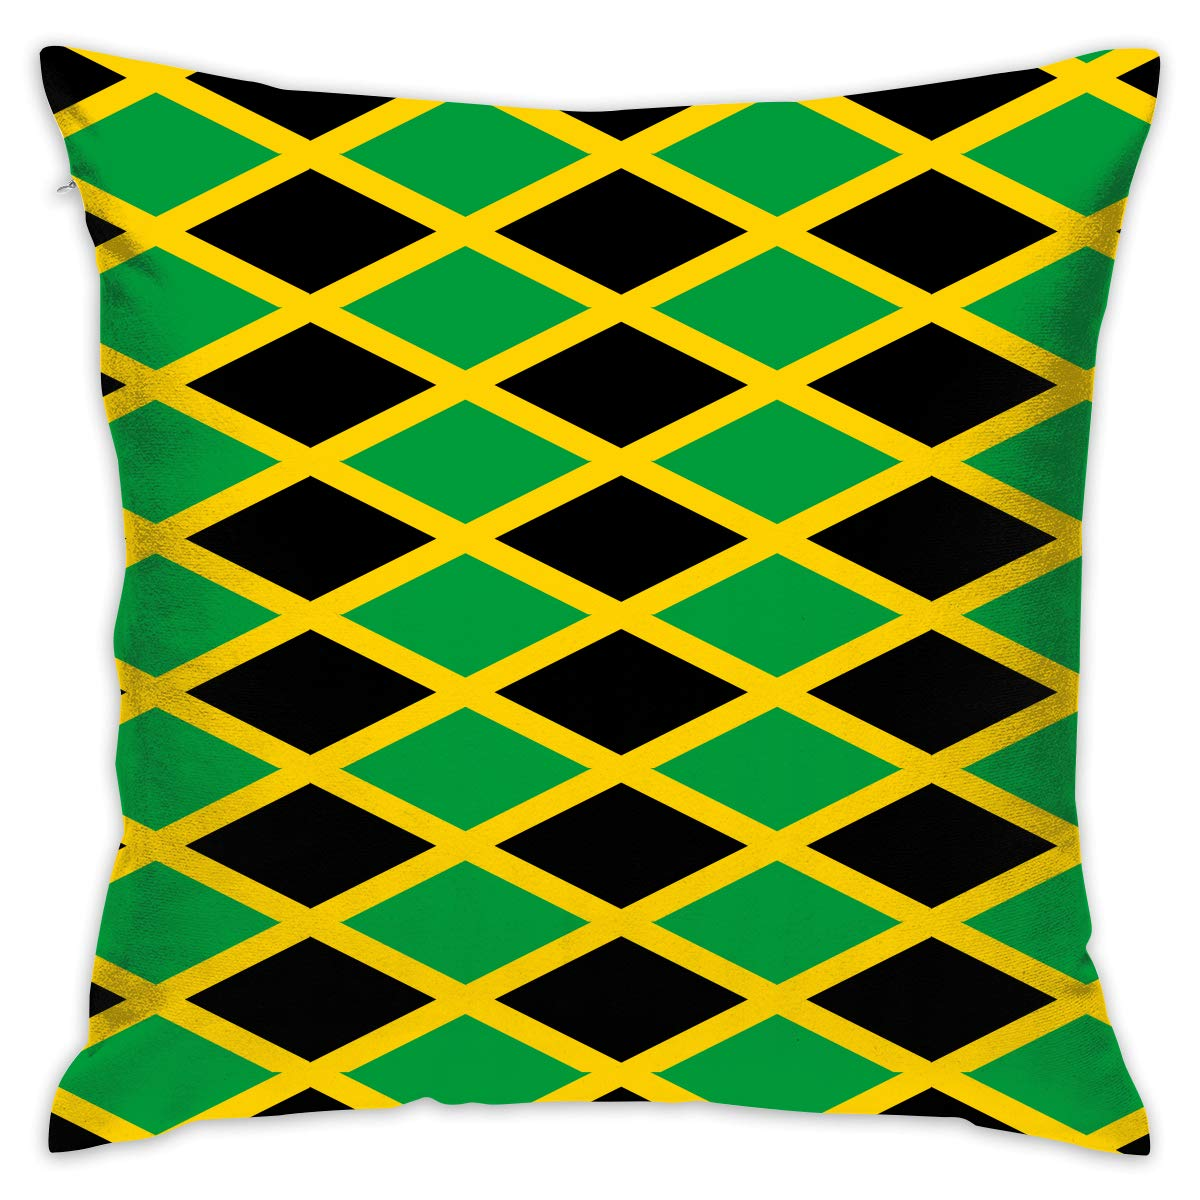 Amazon com choirfun decorative throw pillow case cushion cover 18x18 jamaica jamaican flag caribbean cotton modern square covers for couch bed sofa home